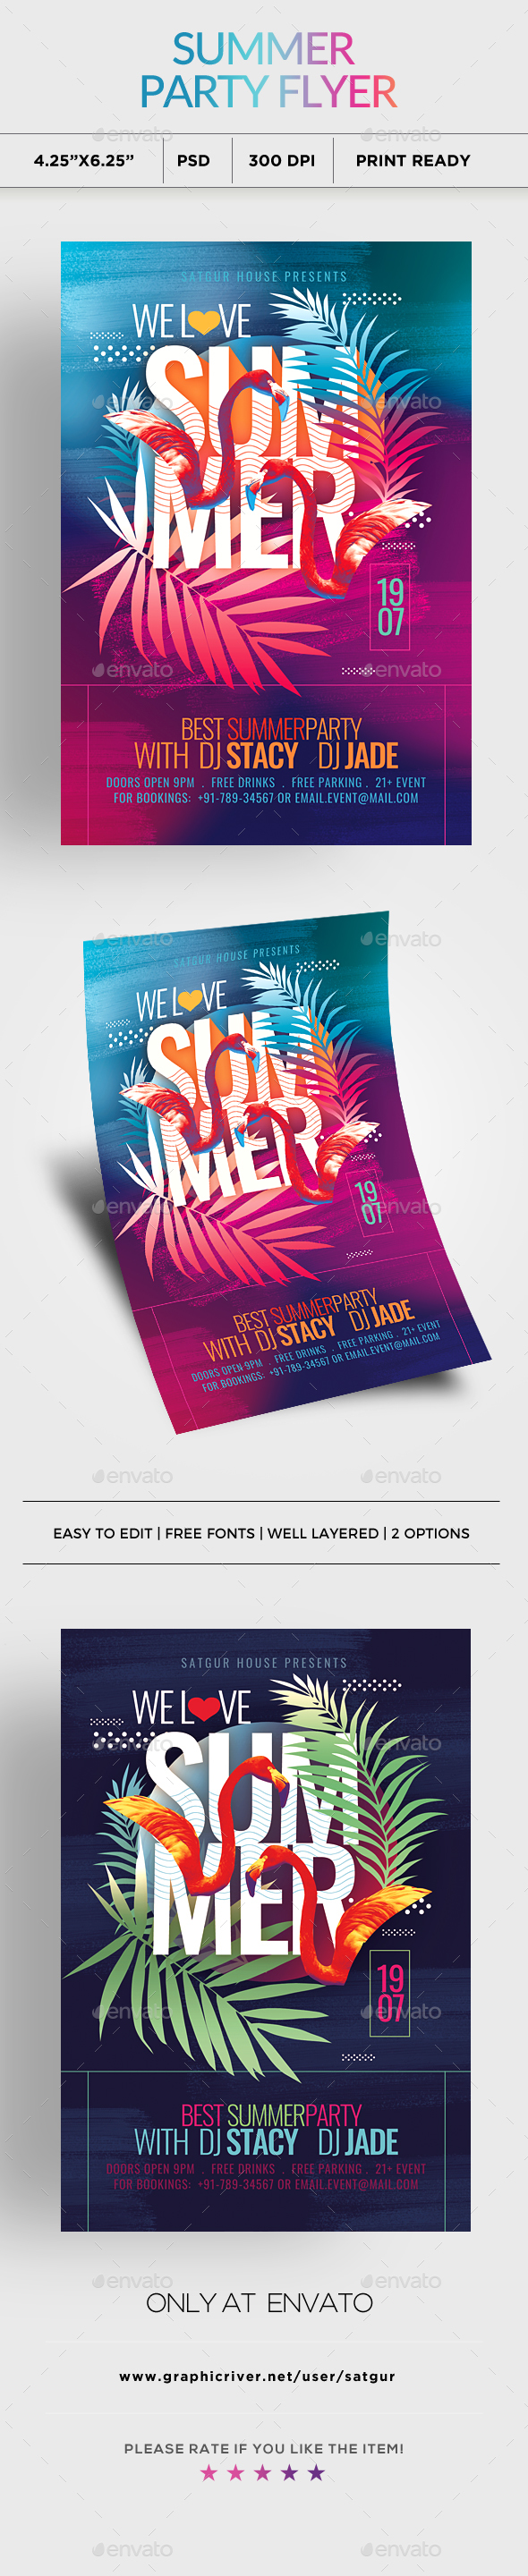 We Love Summer Party Flyer - Clubs & Parties Events